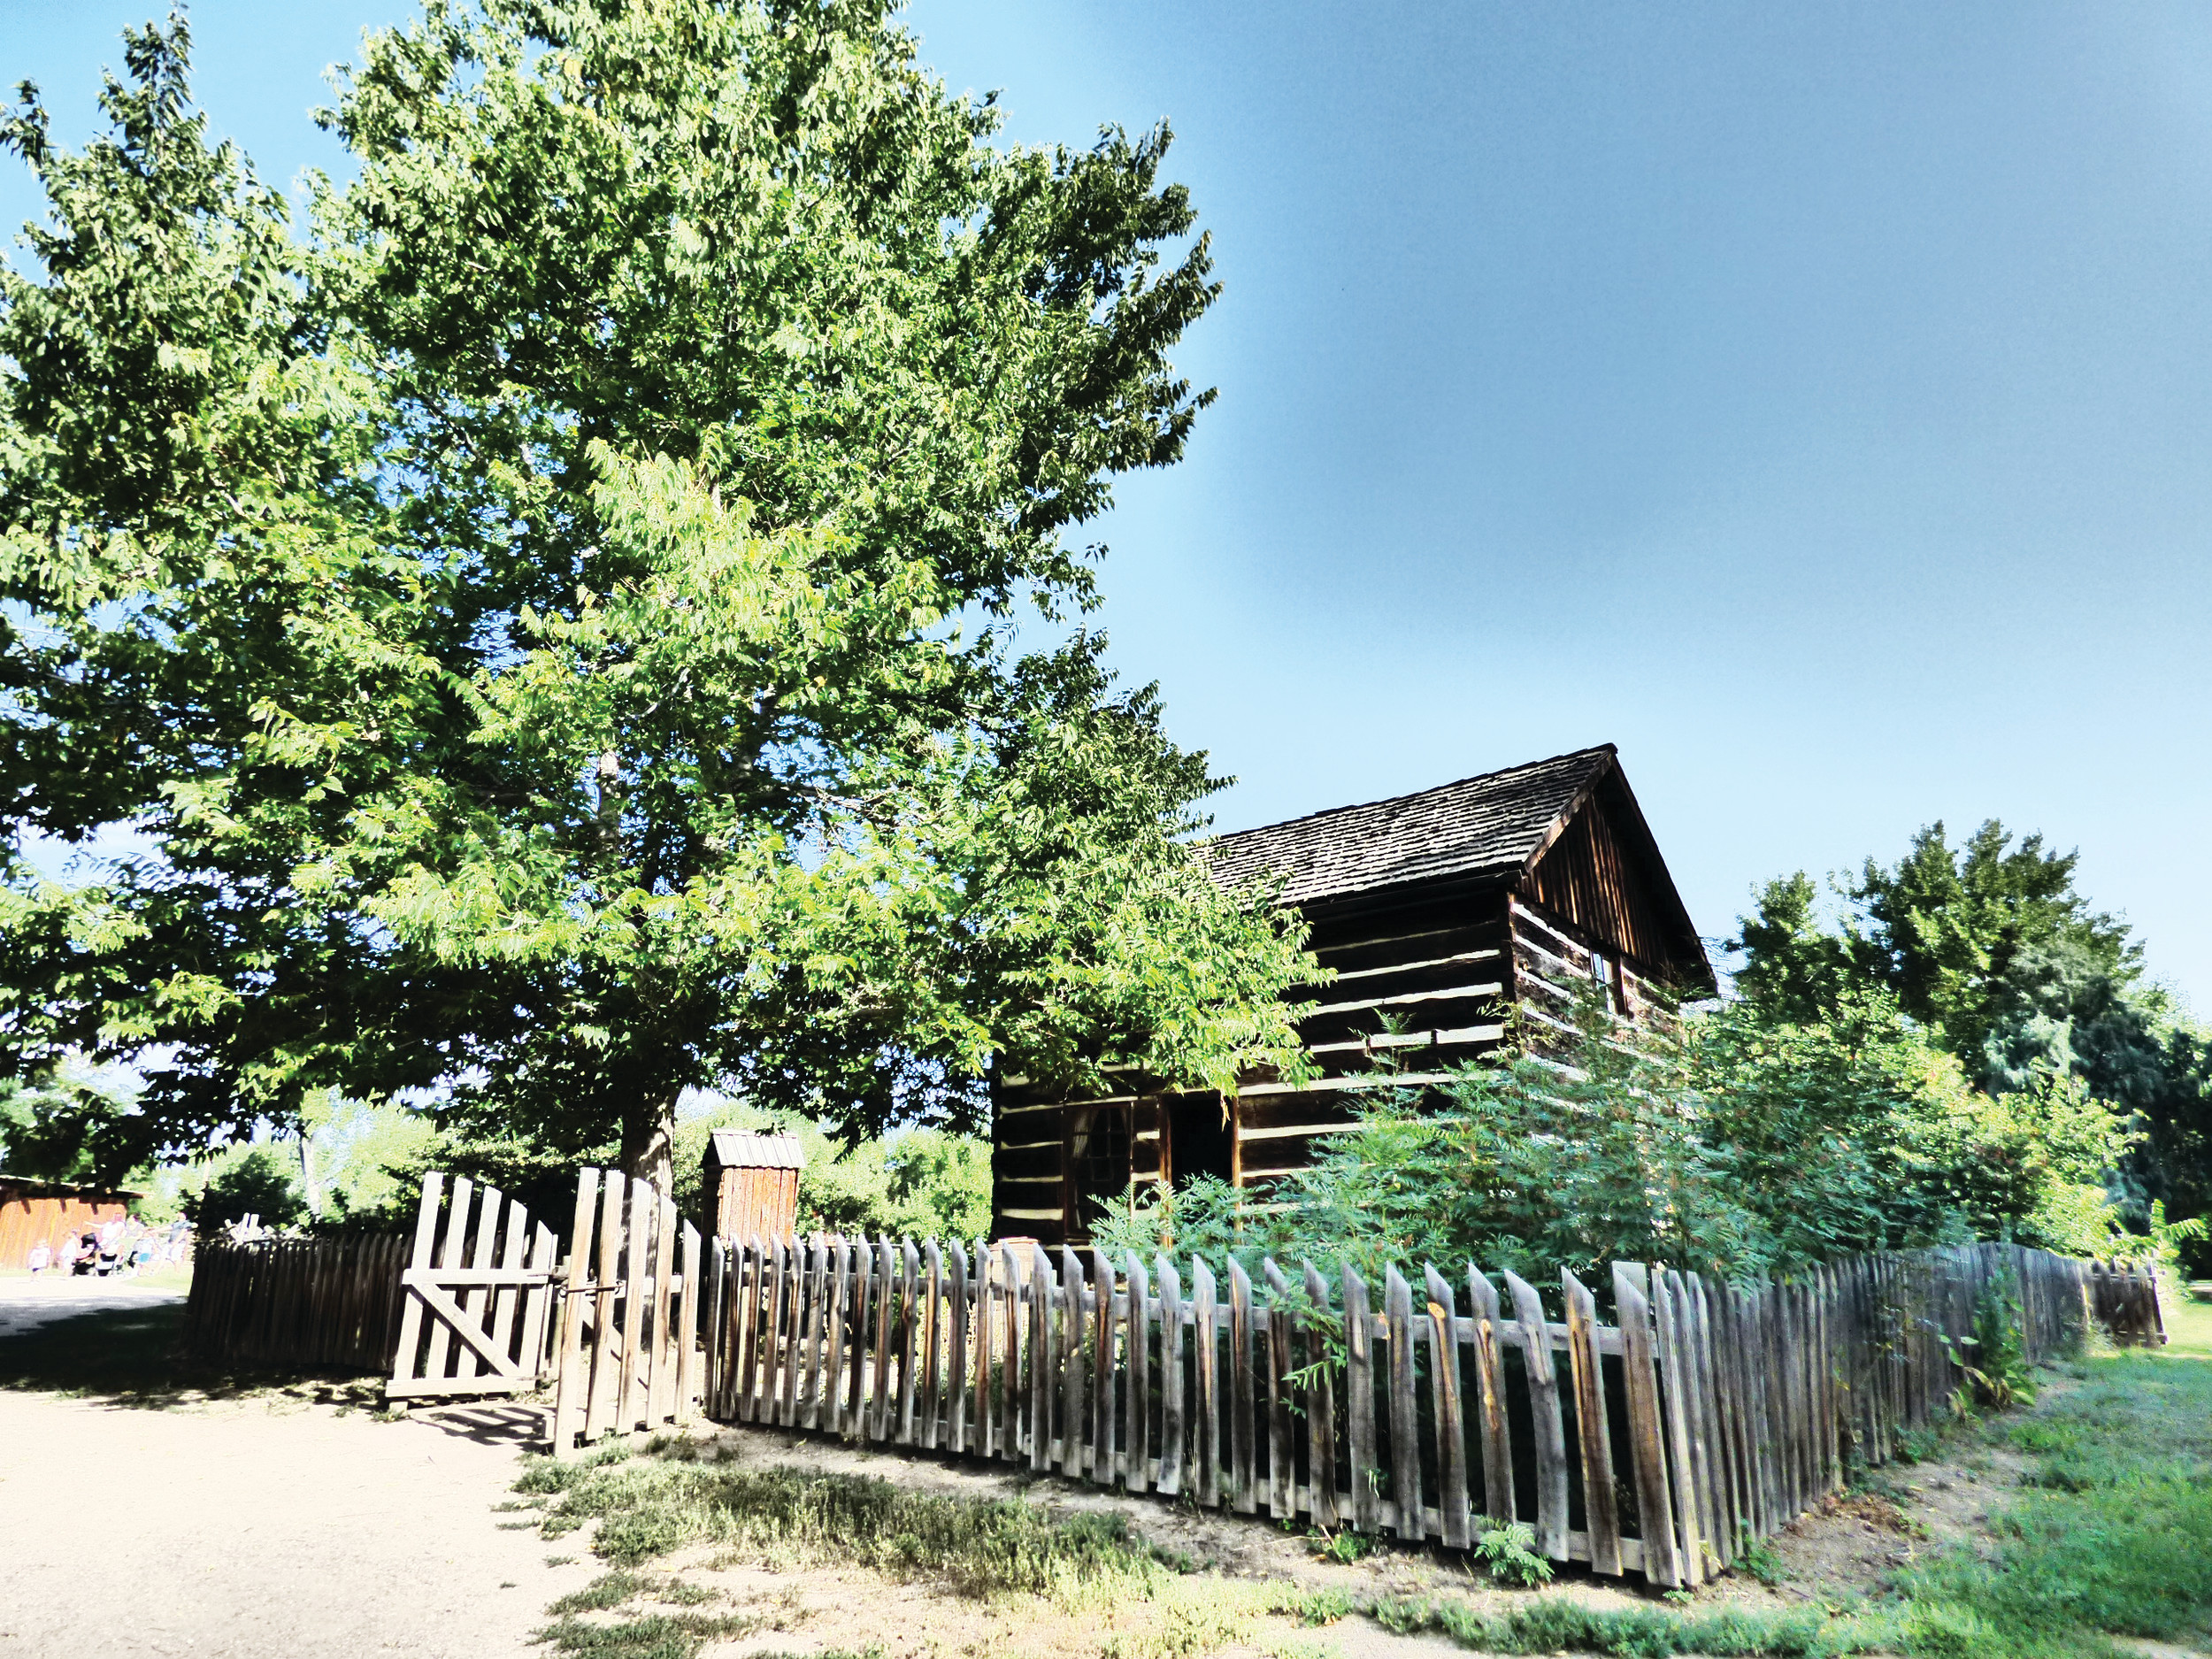 The McBroom Cabin at the Littleton Museum was once home to an early settler's family.